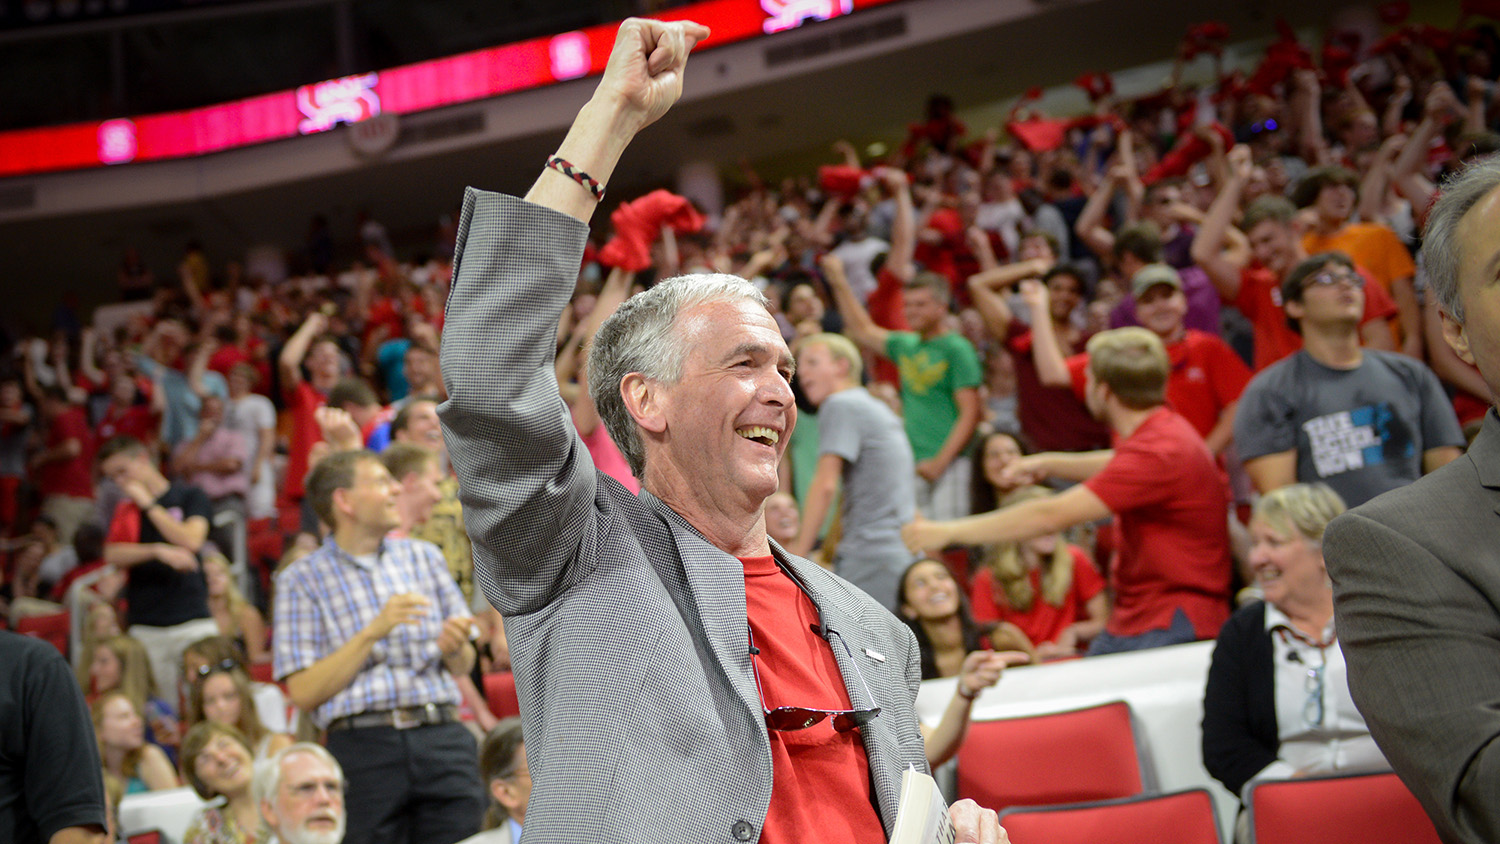 Dean Braden celebrates at an NC State sporting event